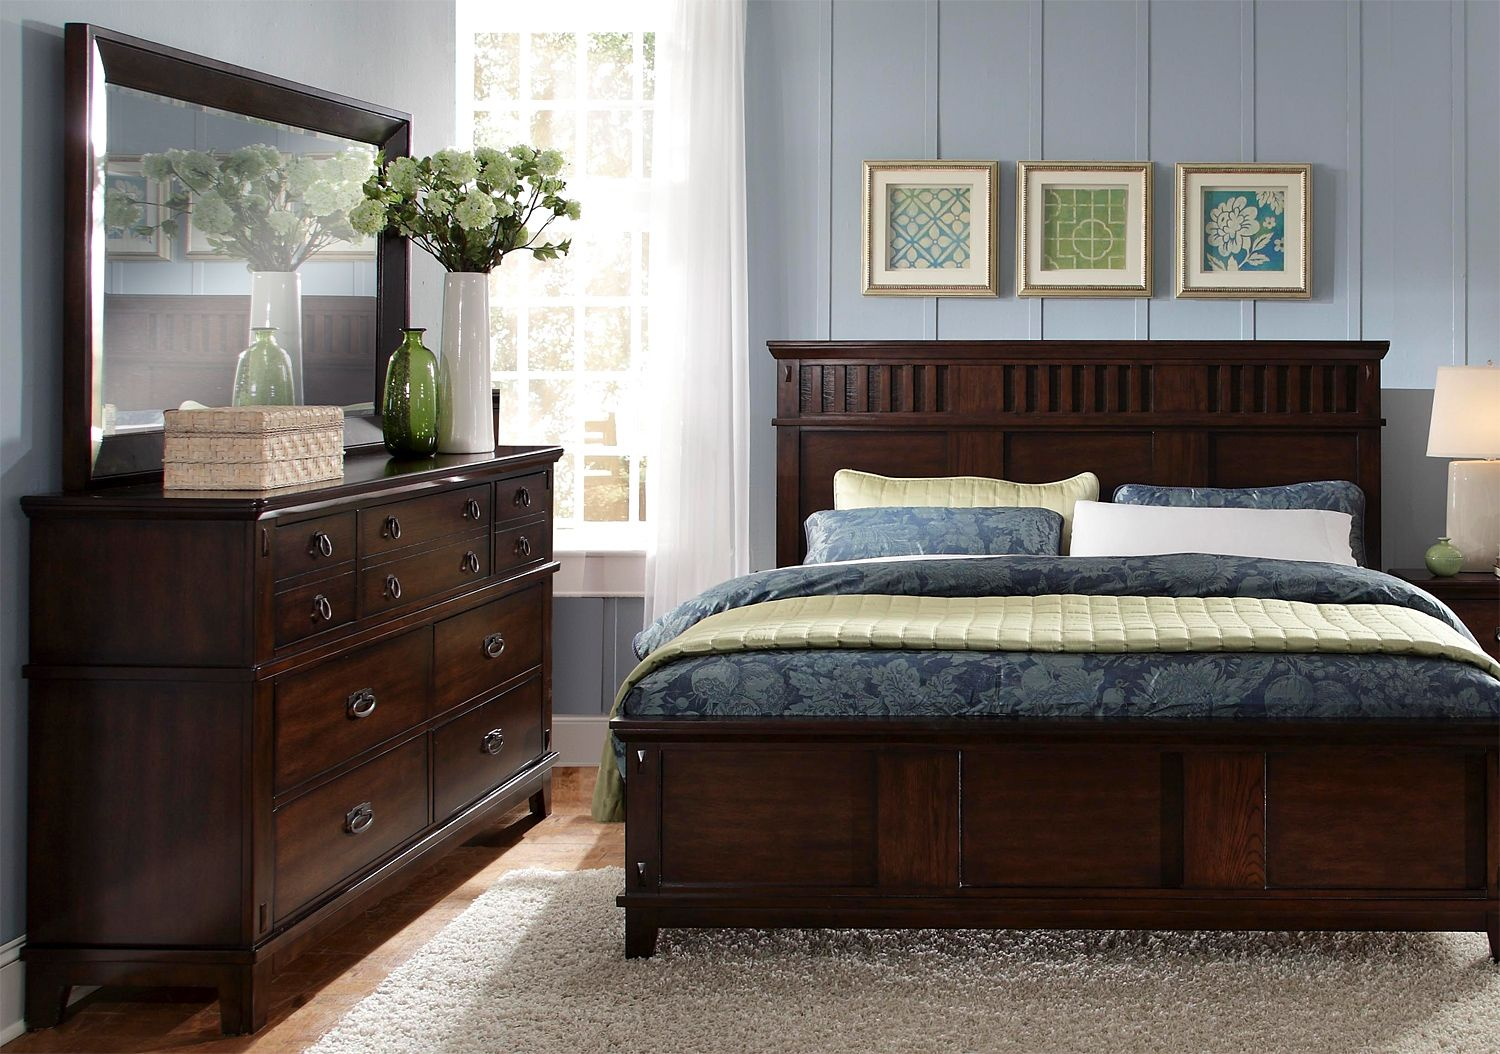 Best 25 Mission Style Bedrooms Ideas On Pinterest Craftsman Bedroom Decor Craftsman Style